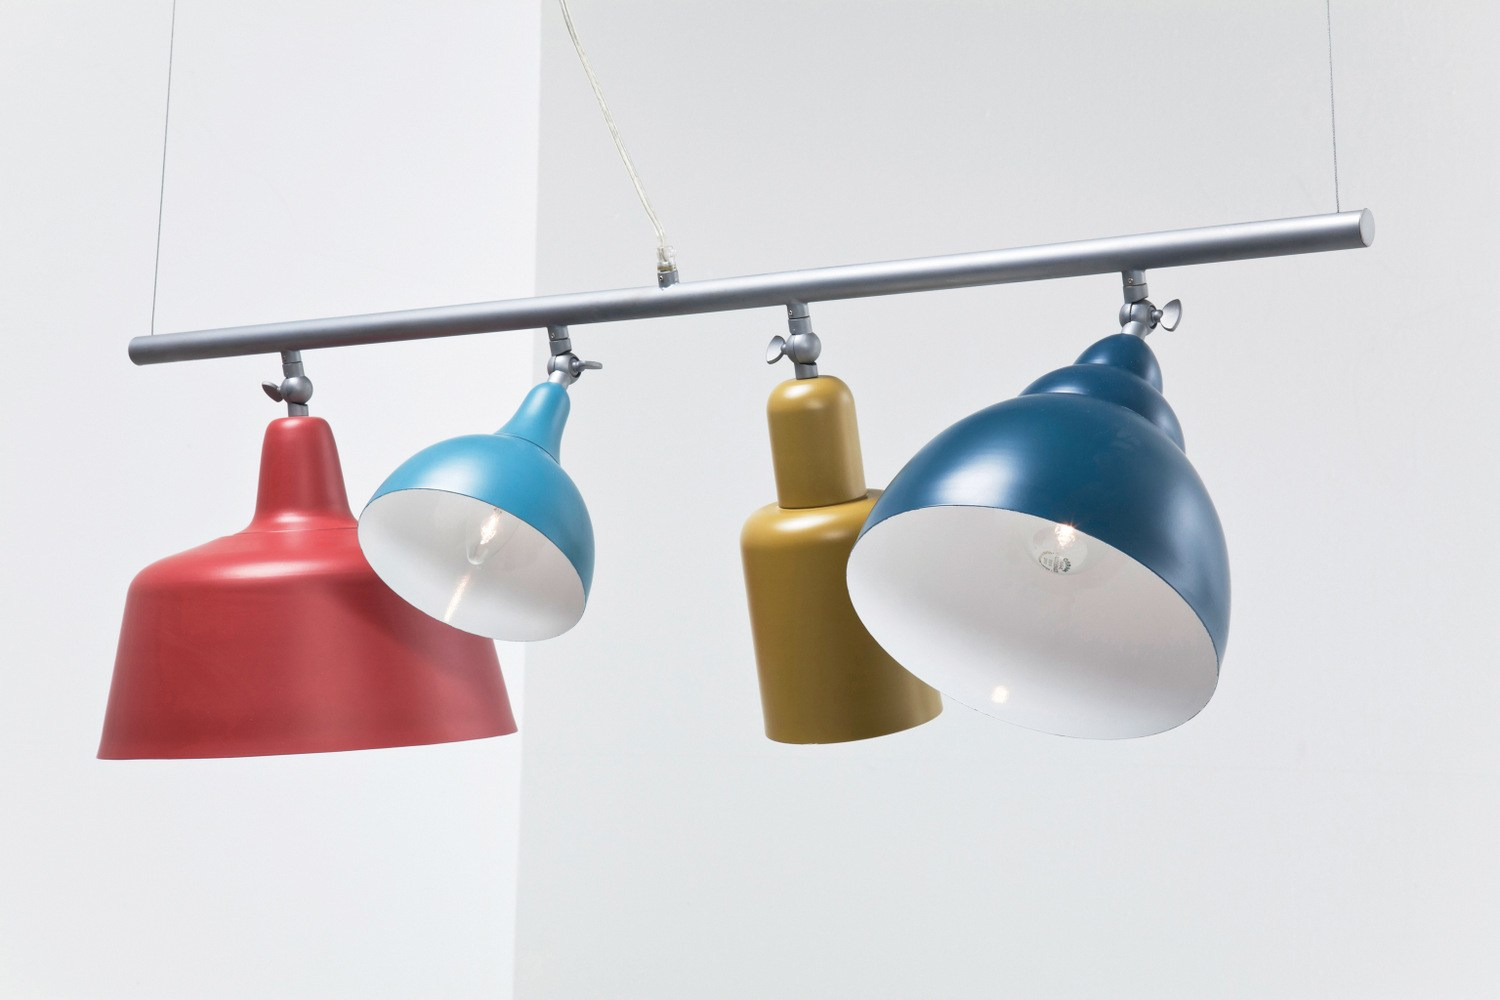 Powder Coated Steel Pendant Lamp Variety By Kare Design